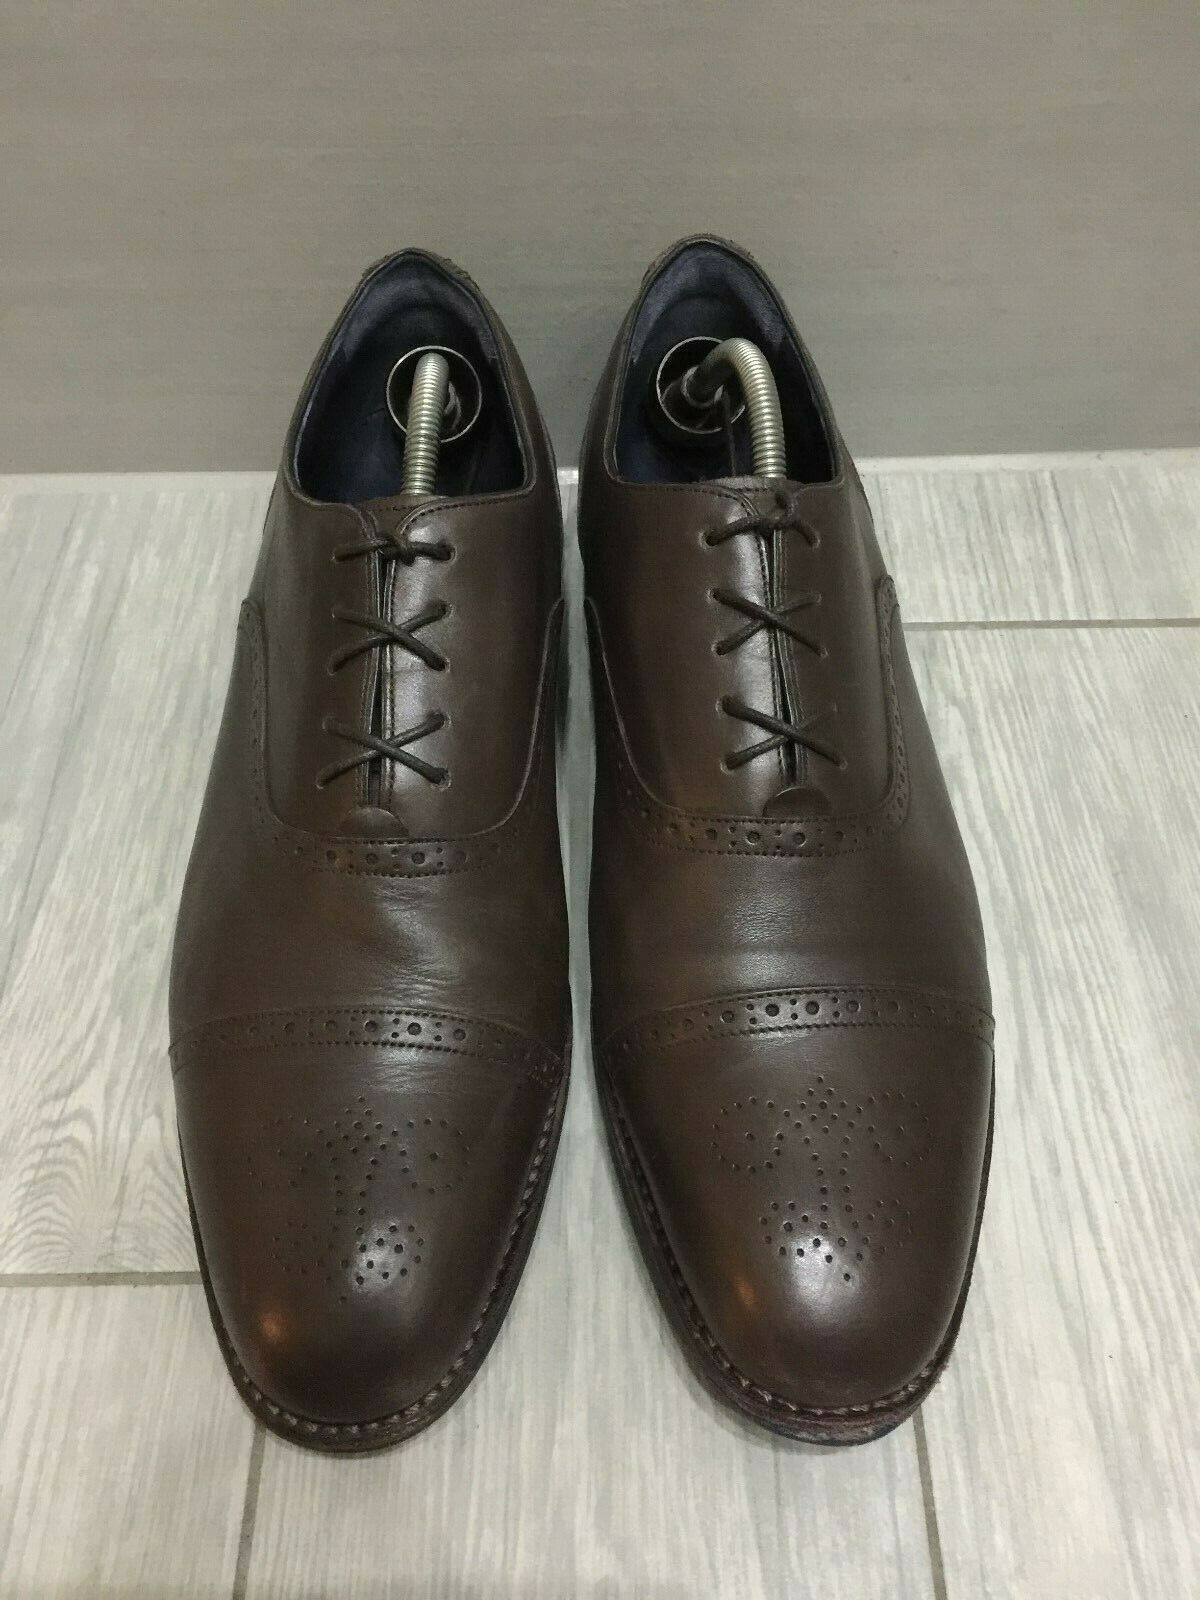 CHARLES TYRWHITT GOODYEAR WELTED LEATHER OXFORD BROGUES, UK 10.5,